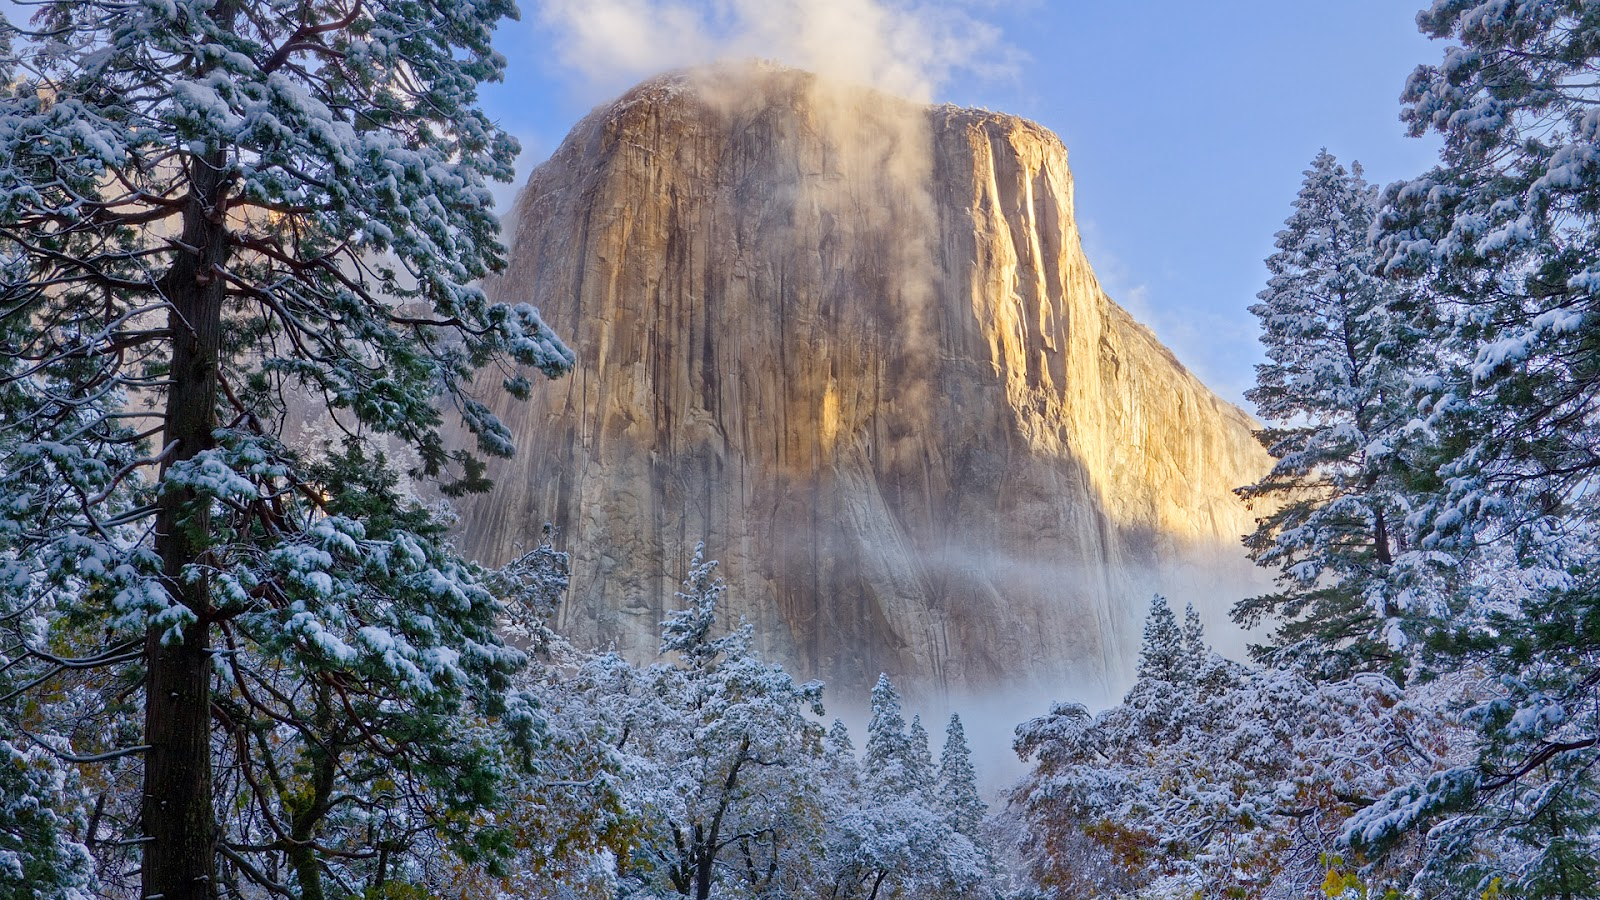 el-capitan-in-winter-yosemite-national-park-california.jpg